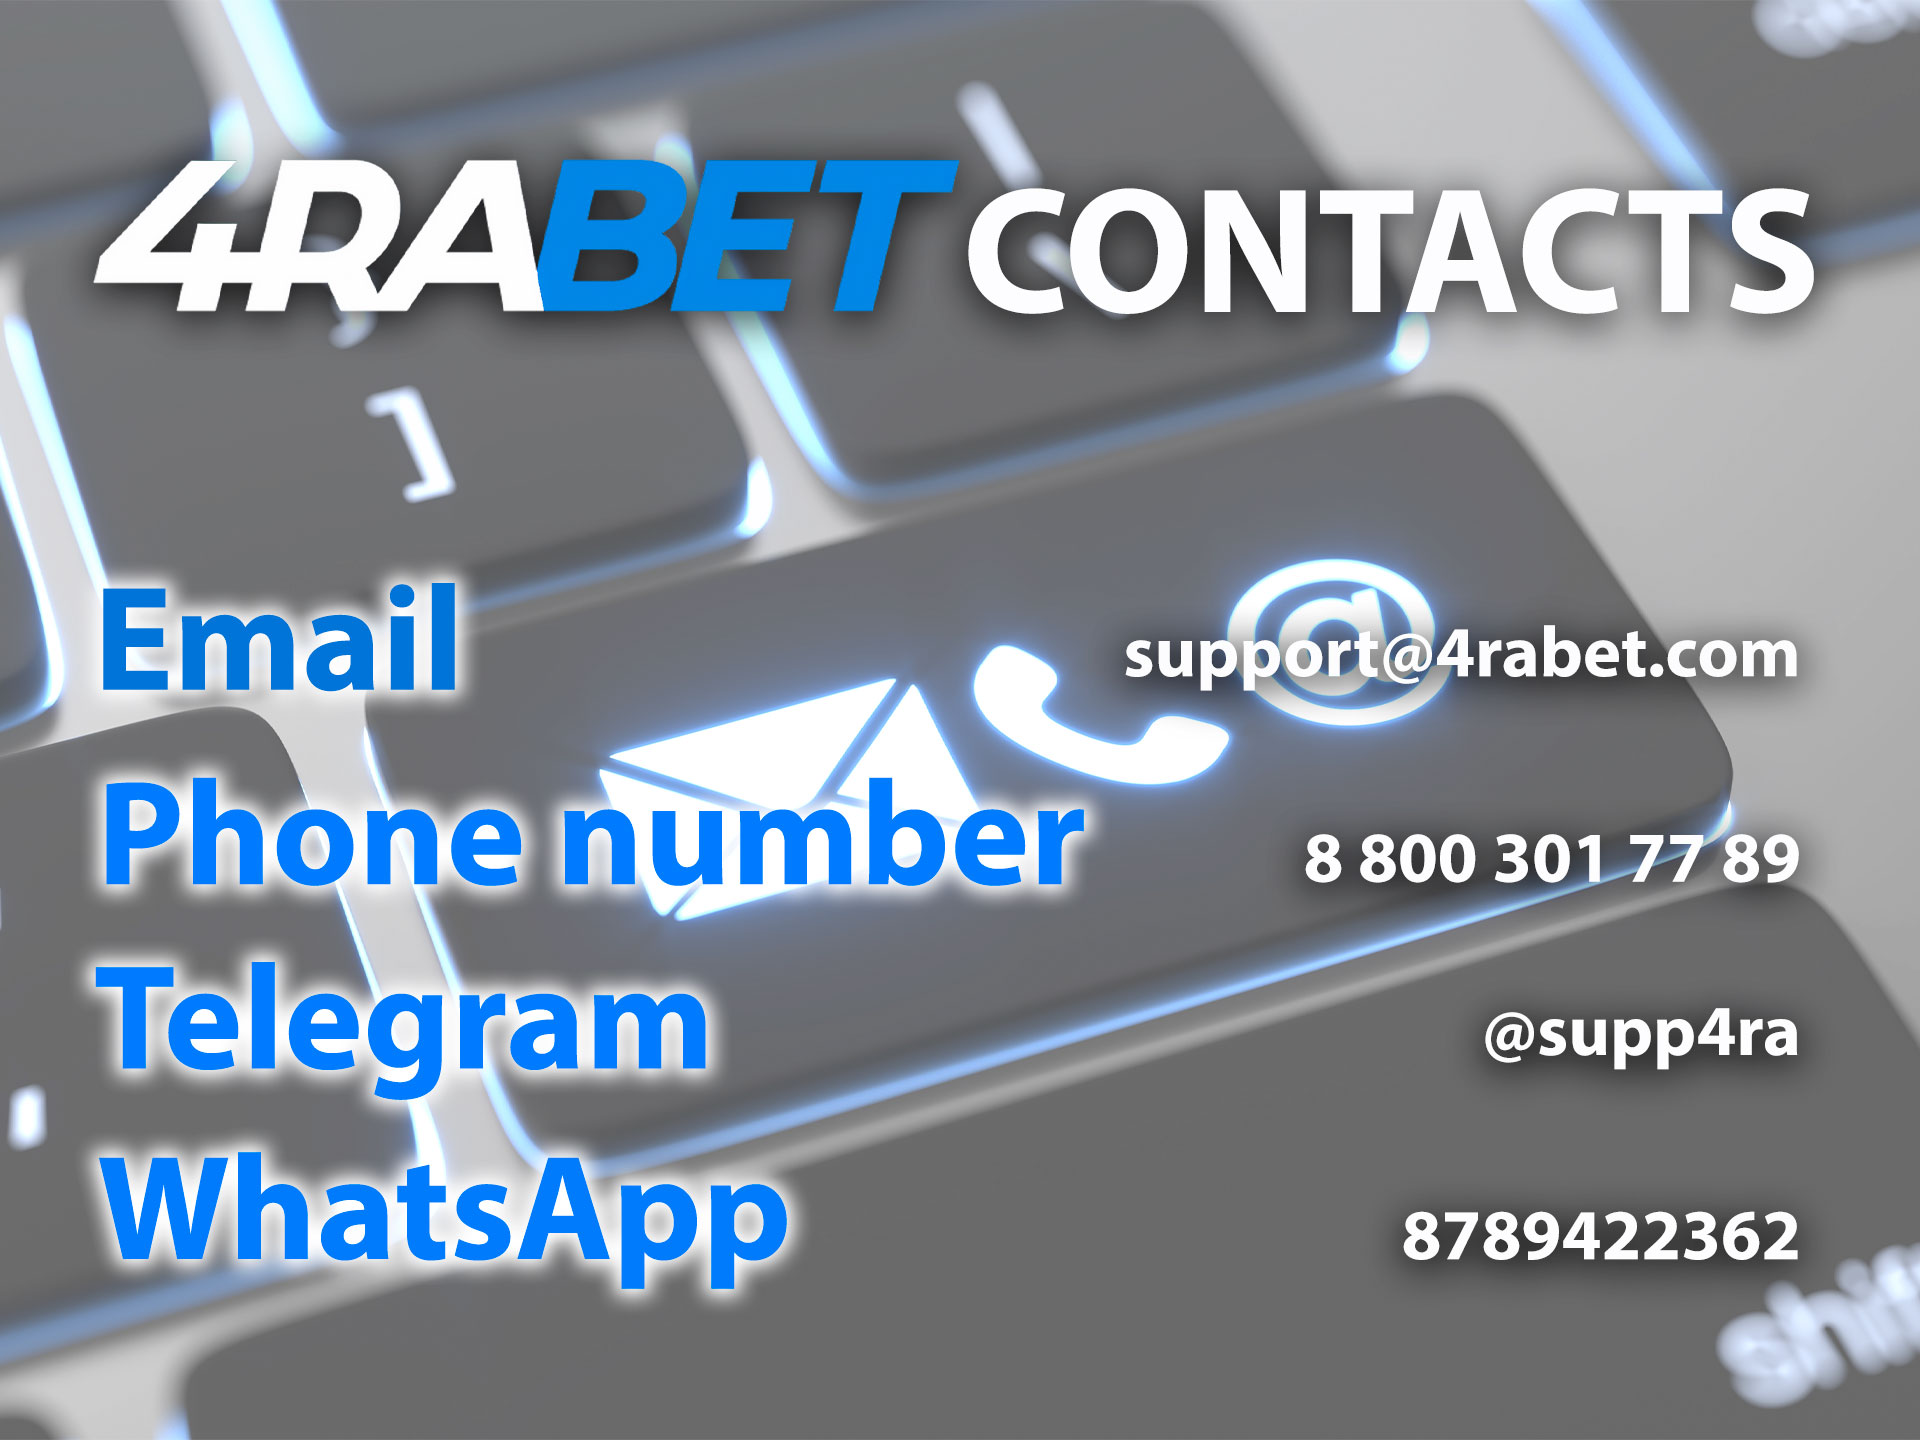 How to contact us? All contacts for contacting 4rabet.